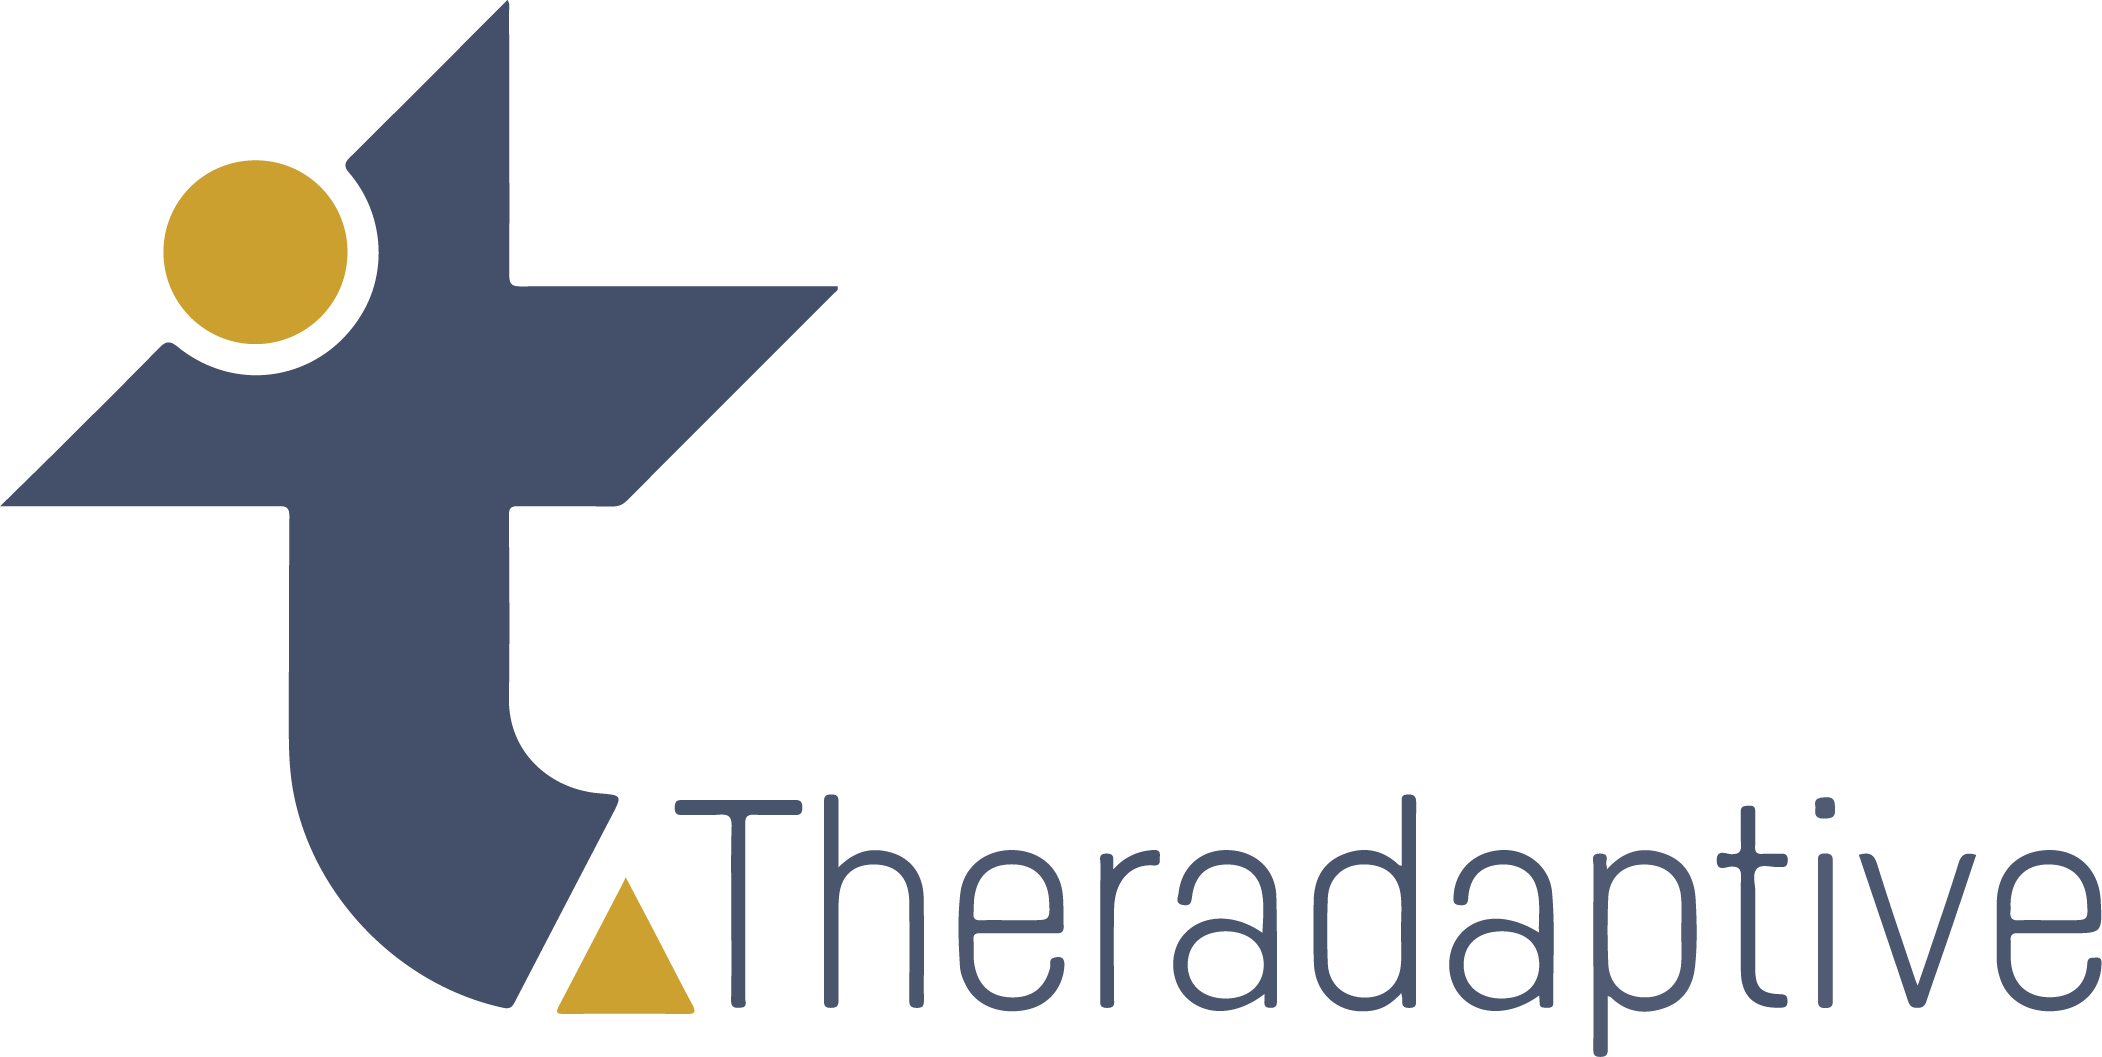 Theradaptive, Inc.